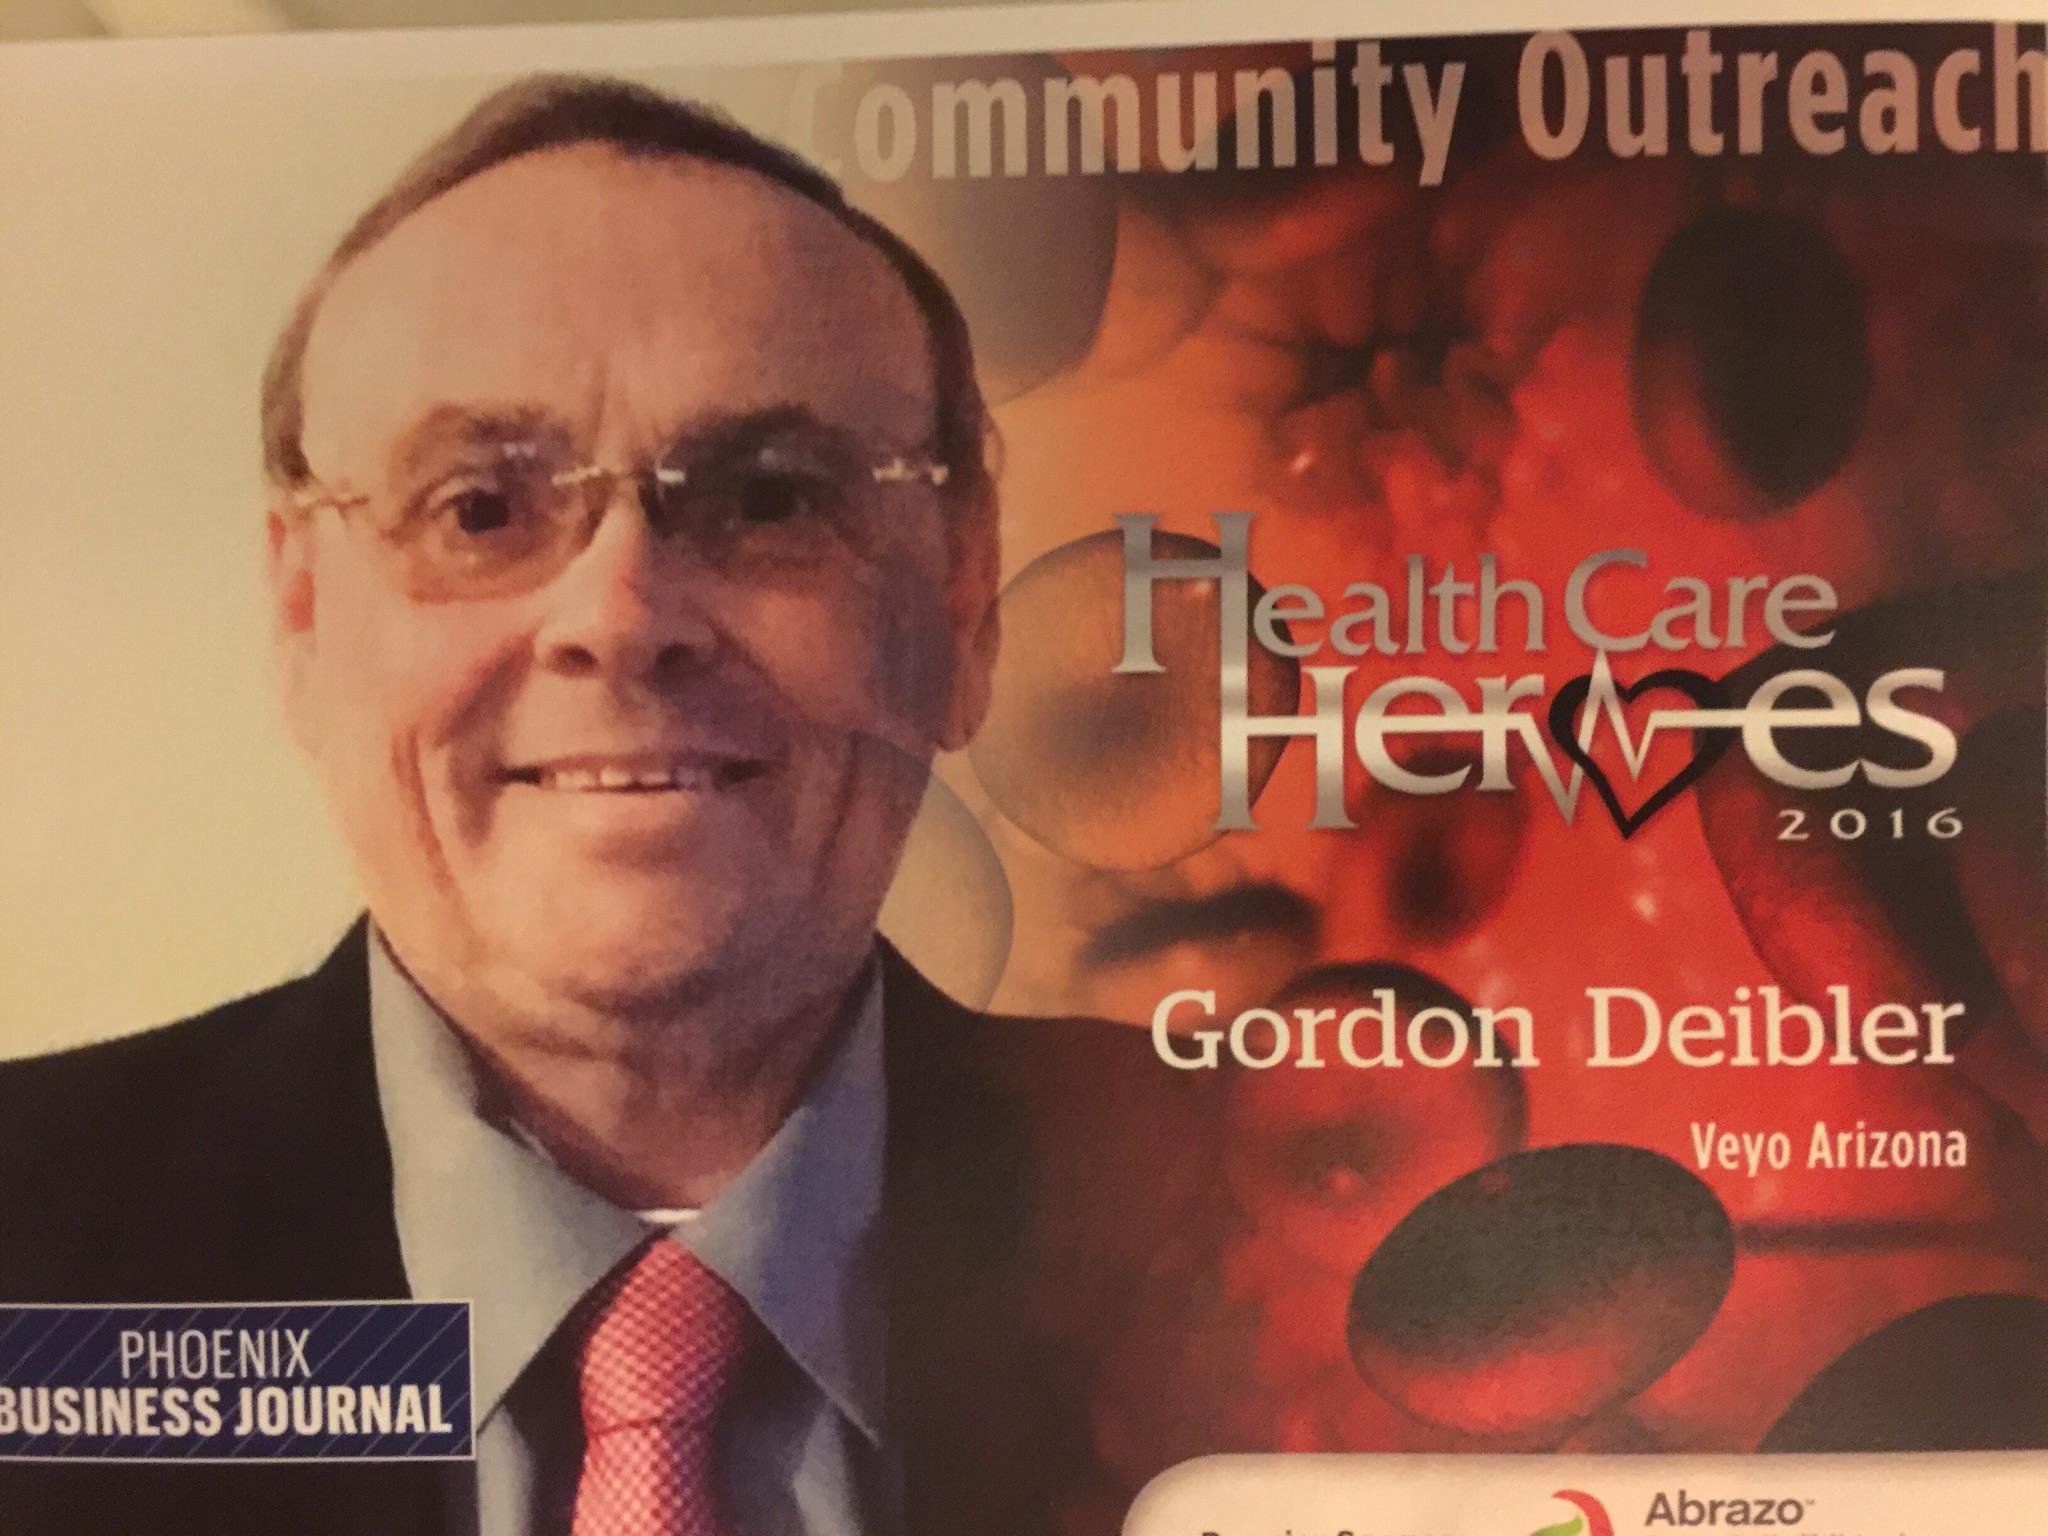 Gordon Diebler nominated for the Phoenix Business Journal Health Care Heroes Award